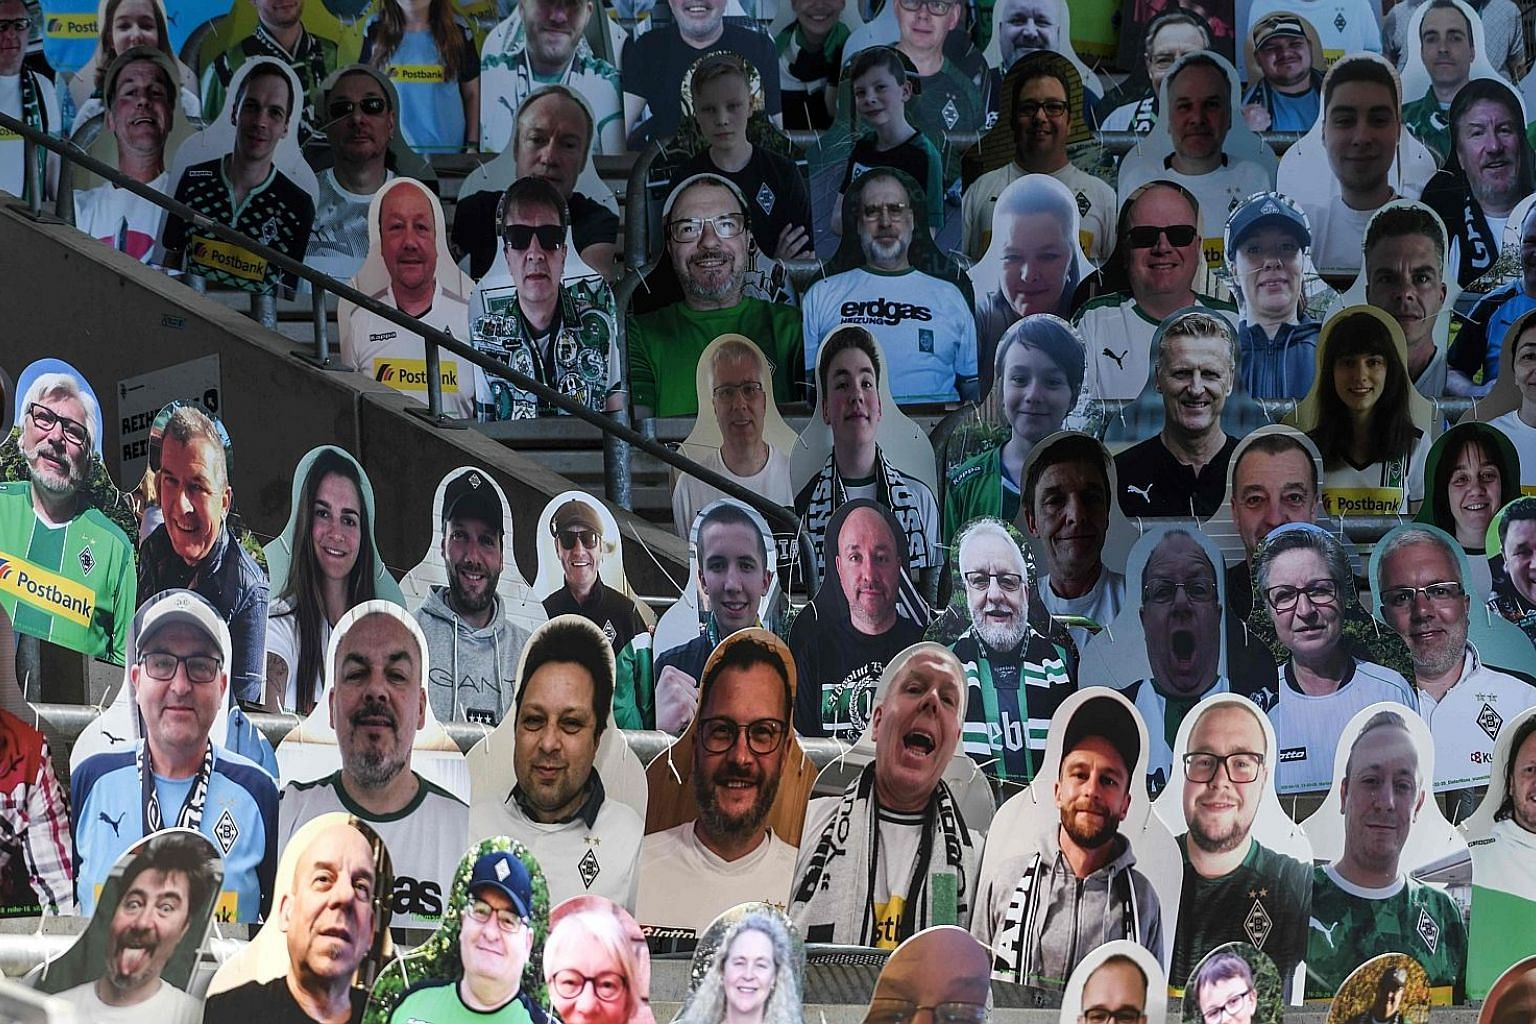 Cardboard cut-outs with portraits of Monchengladbach supporters at the Bundesliga side's ground on Tuesday. These and other gimmicks such as piped-in crowd noise are a poor substitute for live roaring fans.